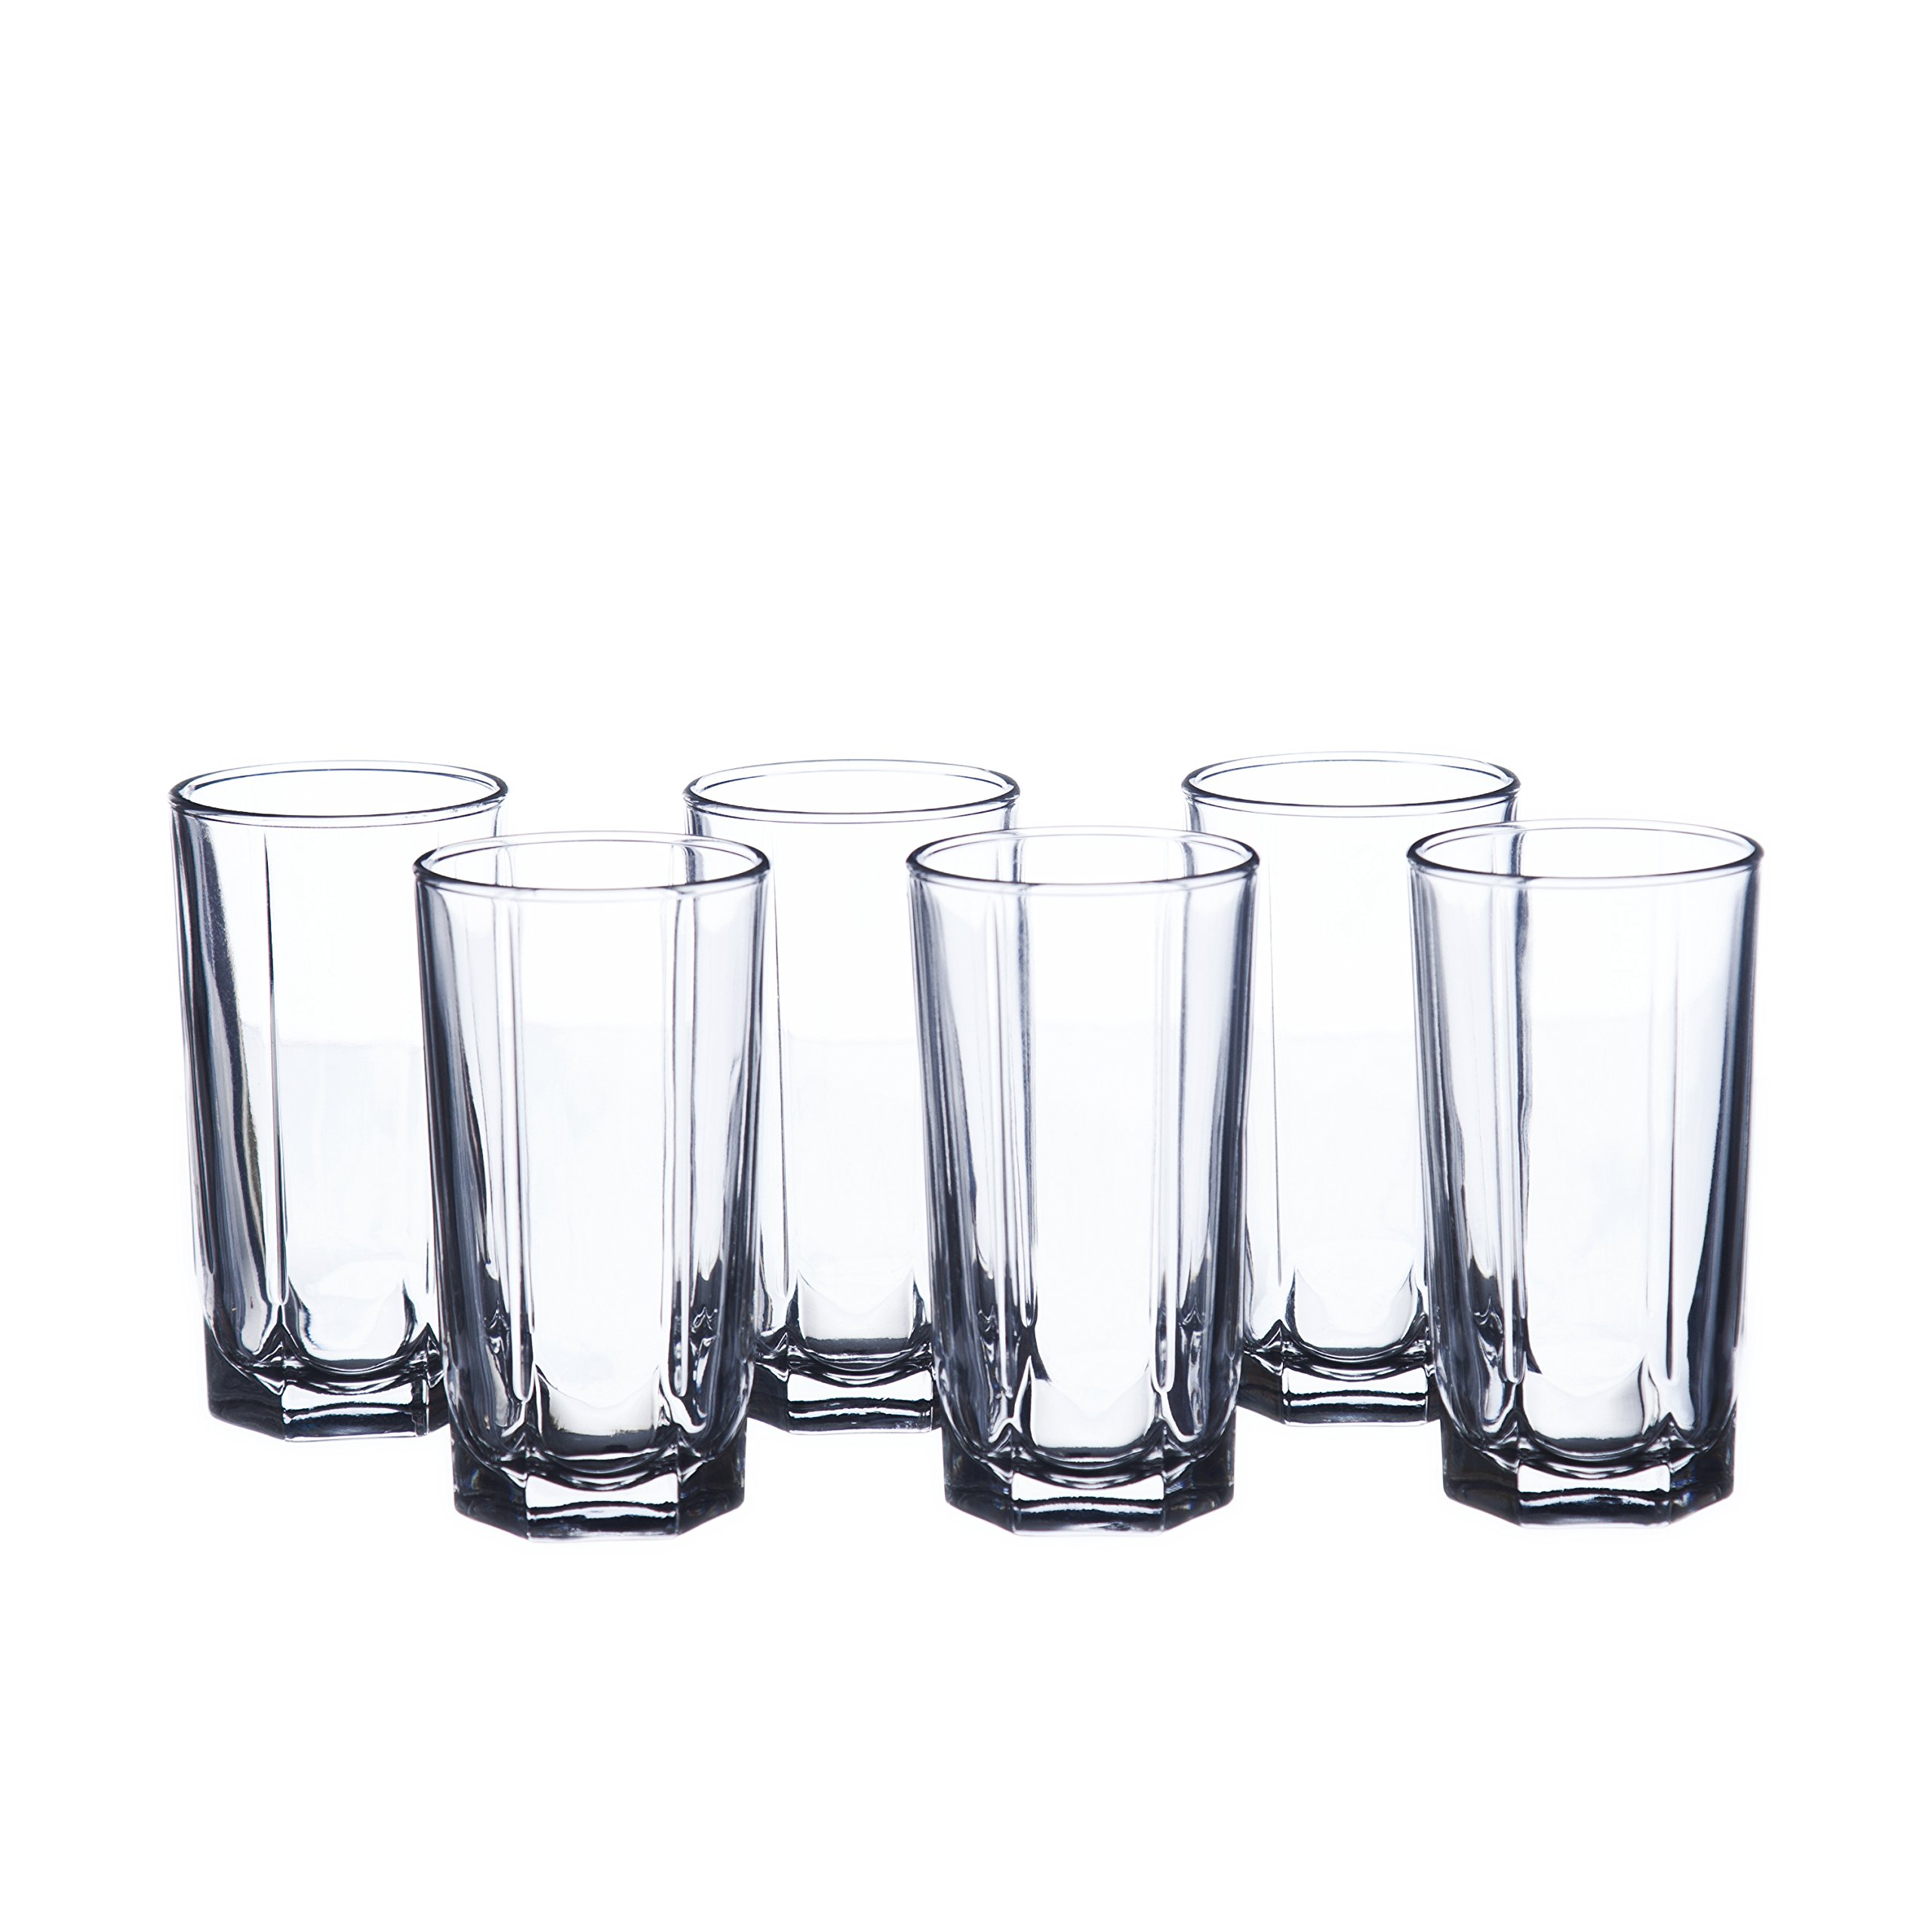 Water/Beverage 6 oz. (180 ml) Highball Glasses Set, Faceted, Durable Tempered Glass (12)